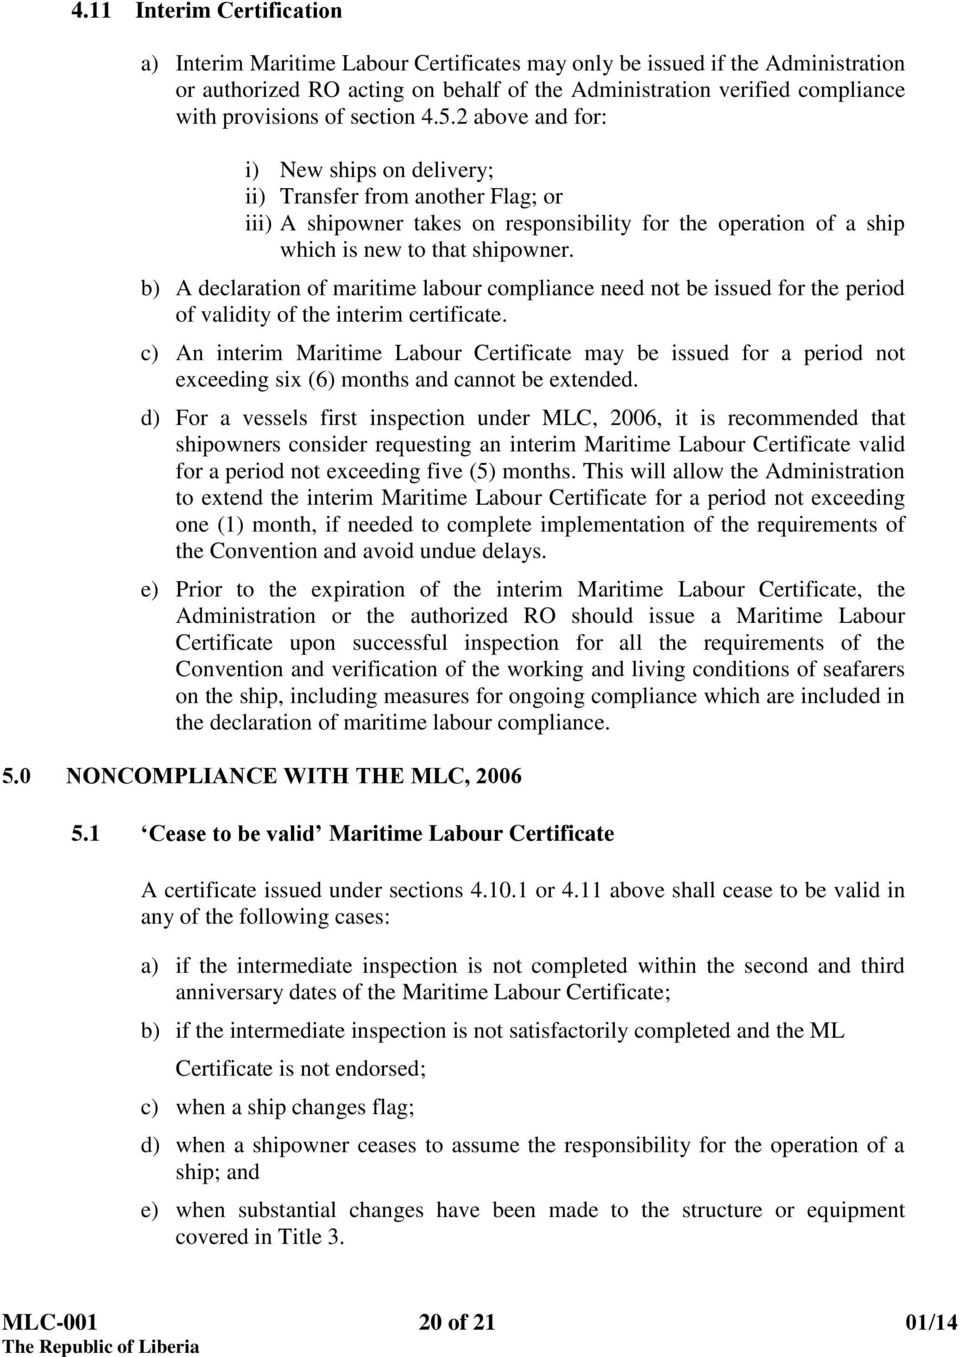 b) A declaration of maritime labour compliance need not be issued for the period of validity of the interim certificate.